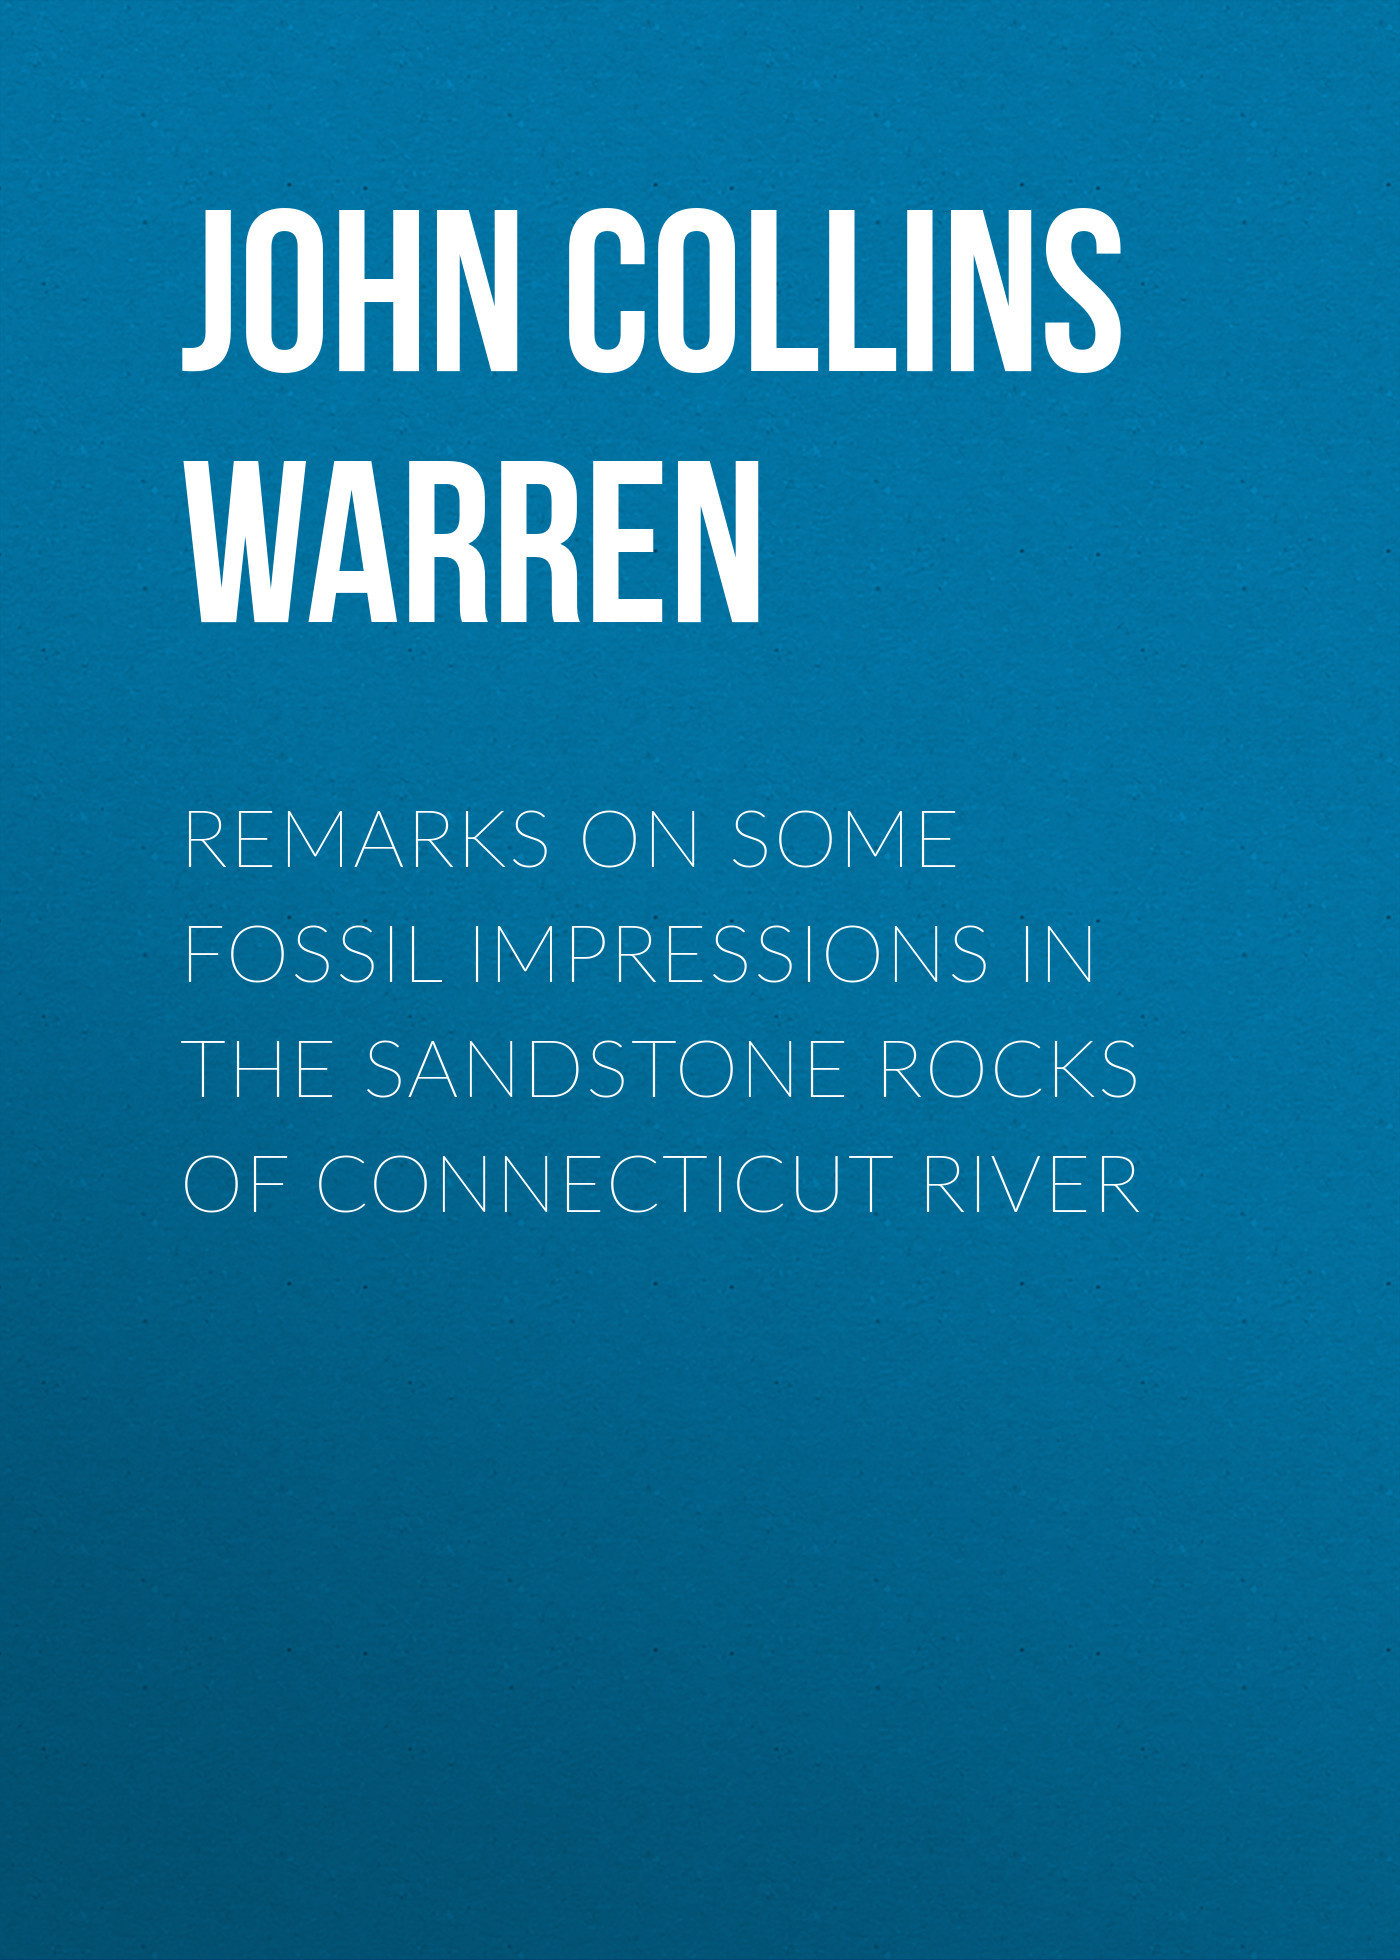 John Collins Warren Remarks on some fossil impressions in the sandstone rocks of Connecticut River collins essential chinese dictionary